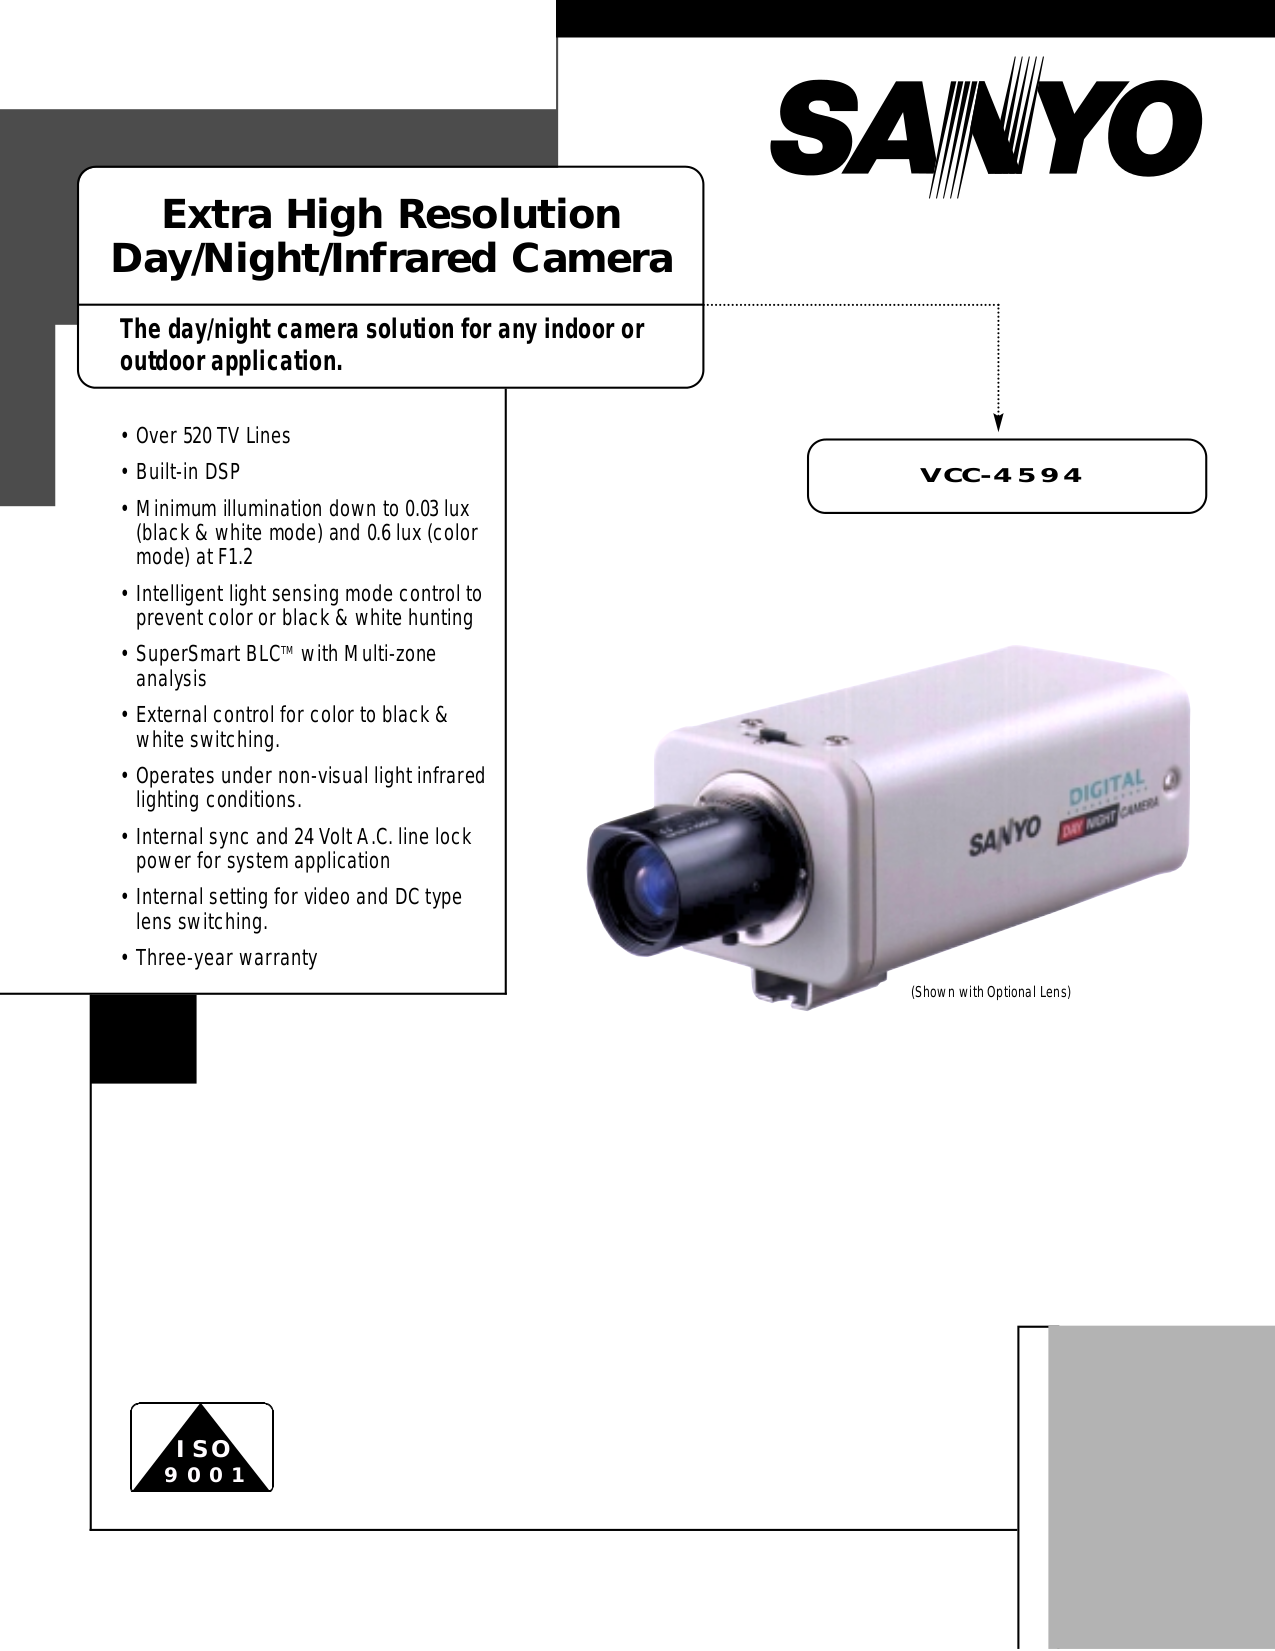 pdf for sanyo security camera vcc 4594 manual ...